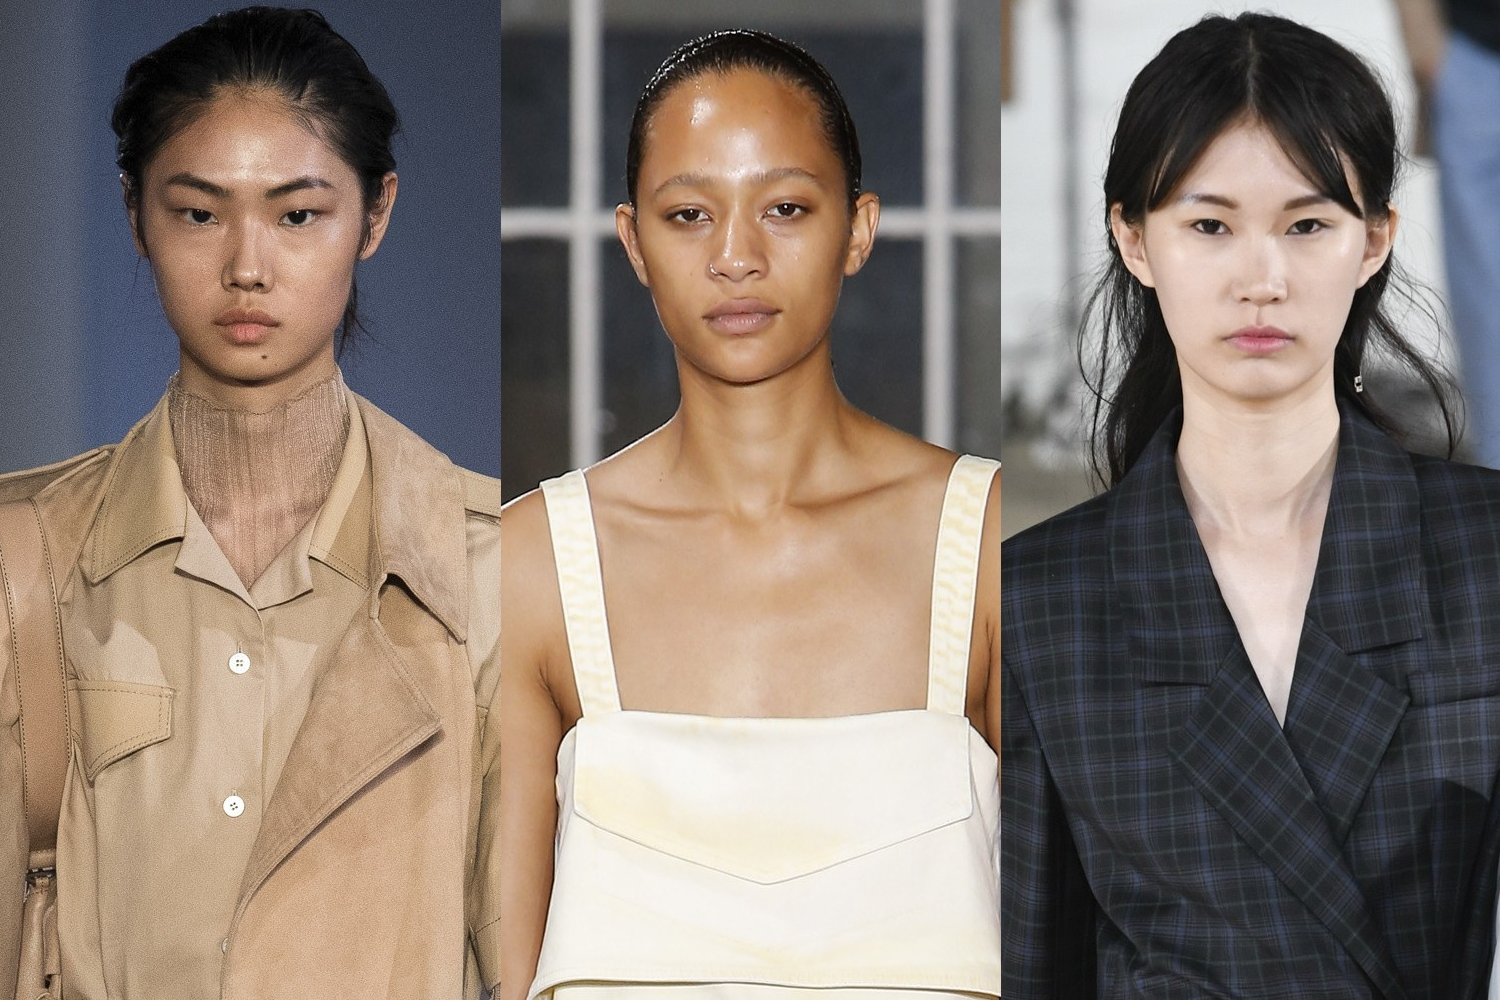 Makeup at  Dion Lee, Proenza Schouler, Tibi fashion runway shows